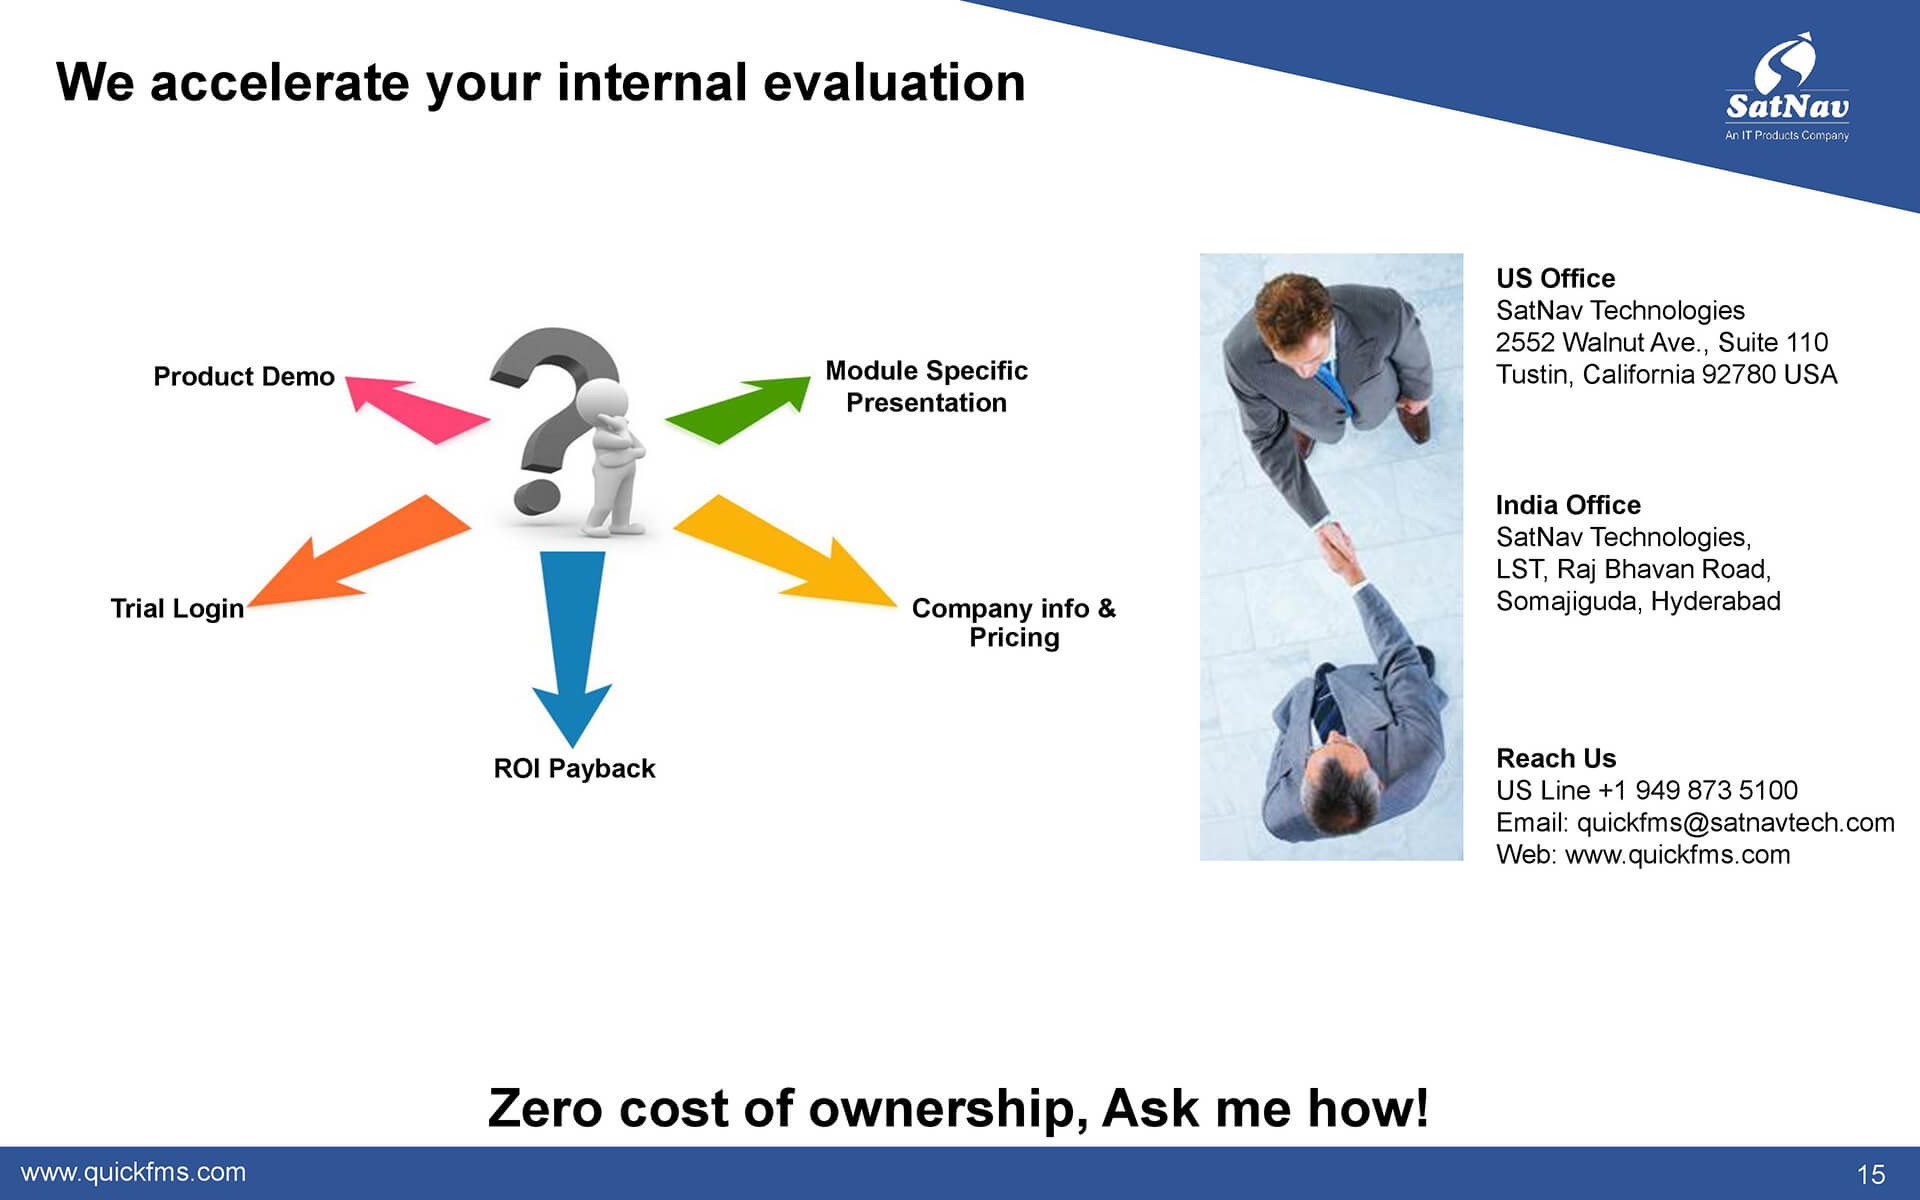 Accelerate your internal evaluation